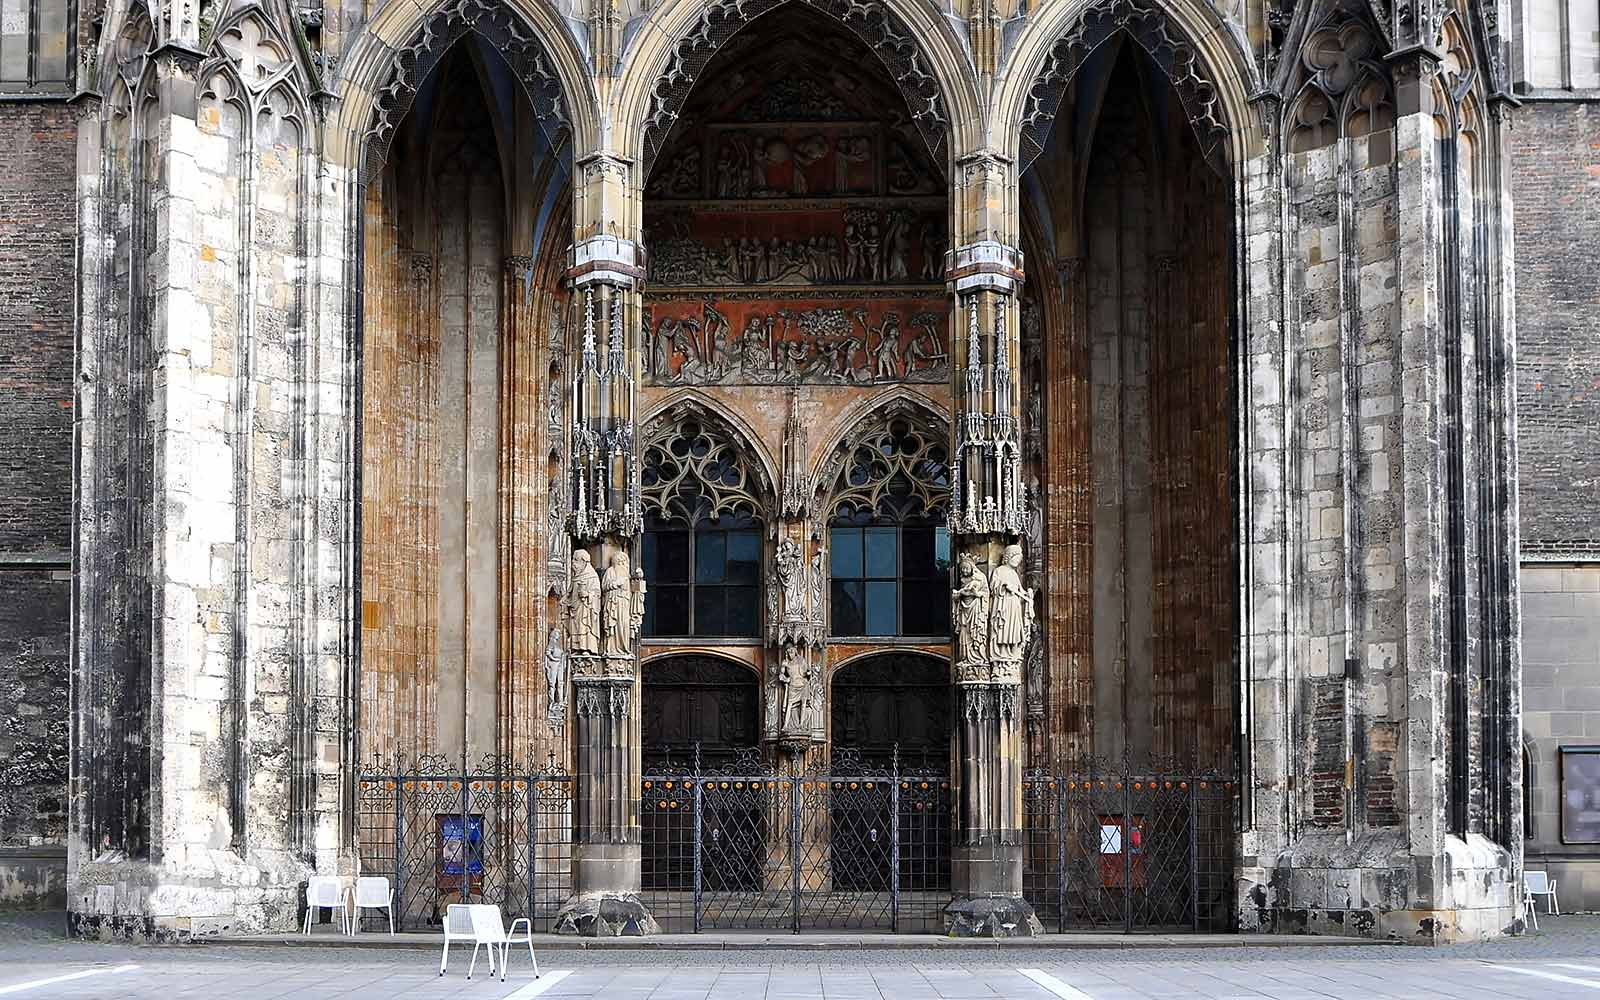 tallest church being eroded by peeing, vomiting vandals